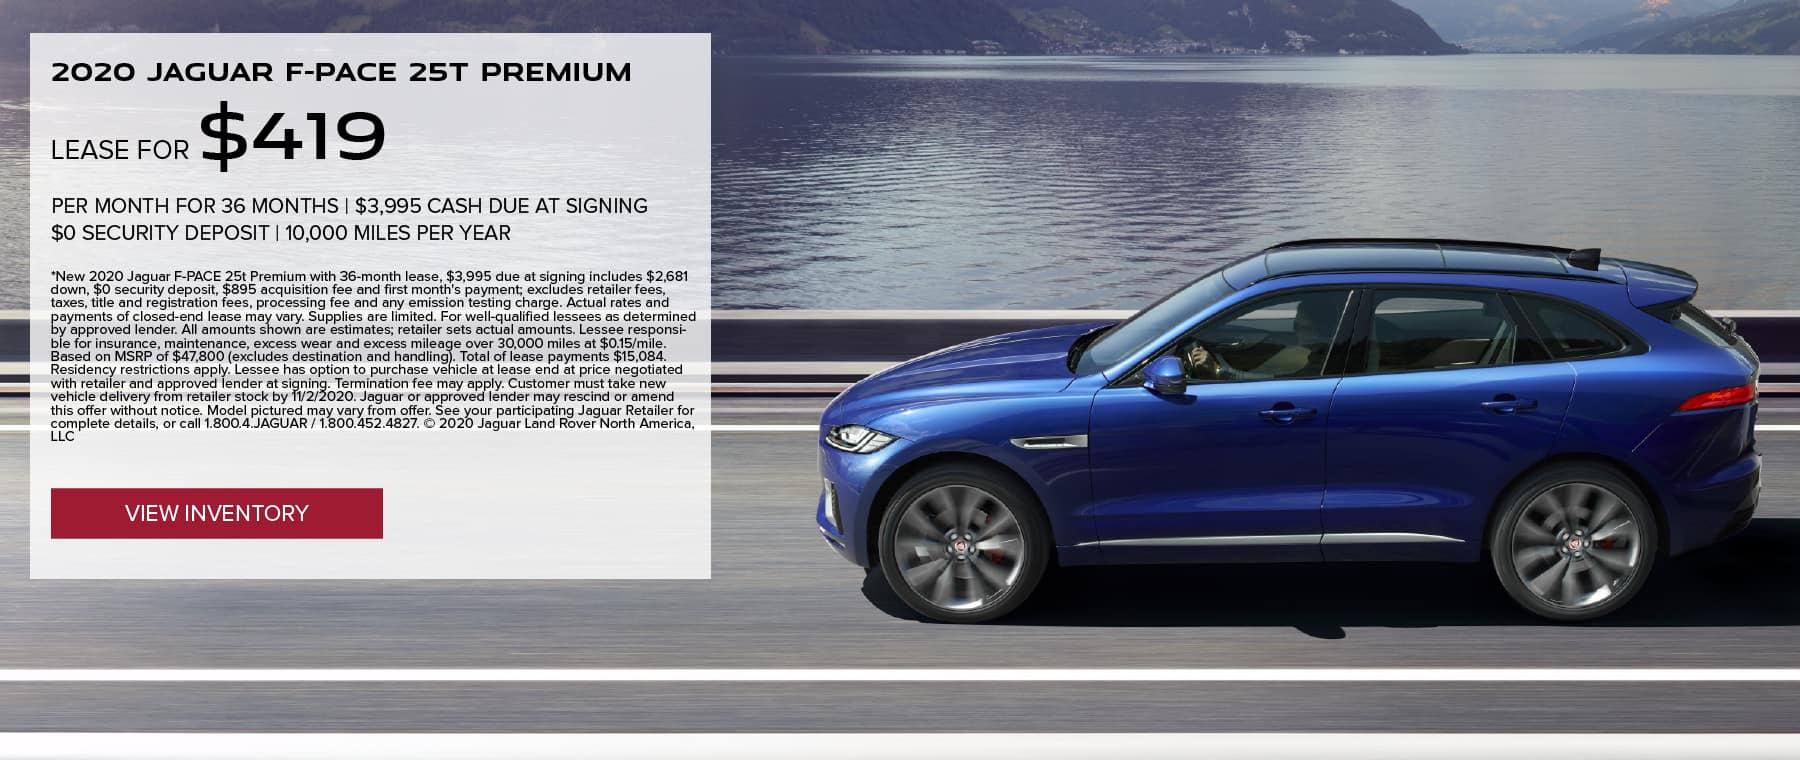 2020 JAGUAR F-PACE 25T PREMIUM. $419 PER MONTH. 36 MONTH LEASE TERM. $3,995 CASH DUE AT SIGNING. $0 SECURITY DEPOSIT. 10,000 MILES PER YEAR. EXCLUDES RETAILER FEES, TAXES, TITLE AND REGISTRATION FEES, PROCESSING FEE AND ANY EMISSION TESTING CHARGE. OFFER ENDS 11/2/2020. VIEW INVENTORY. BLUE JAGUAR F-PACE DRIVING DOWN ROAD NEAR LAKE.